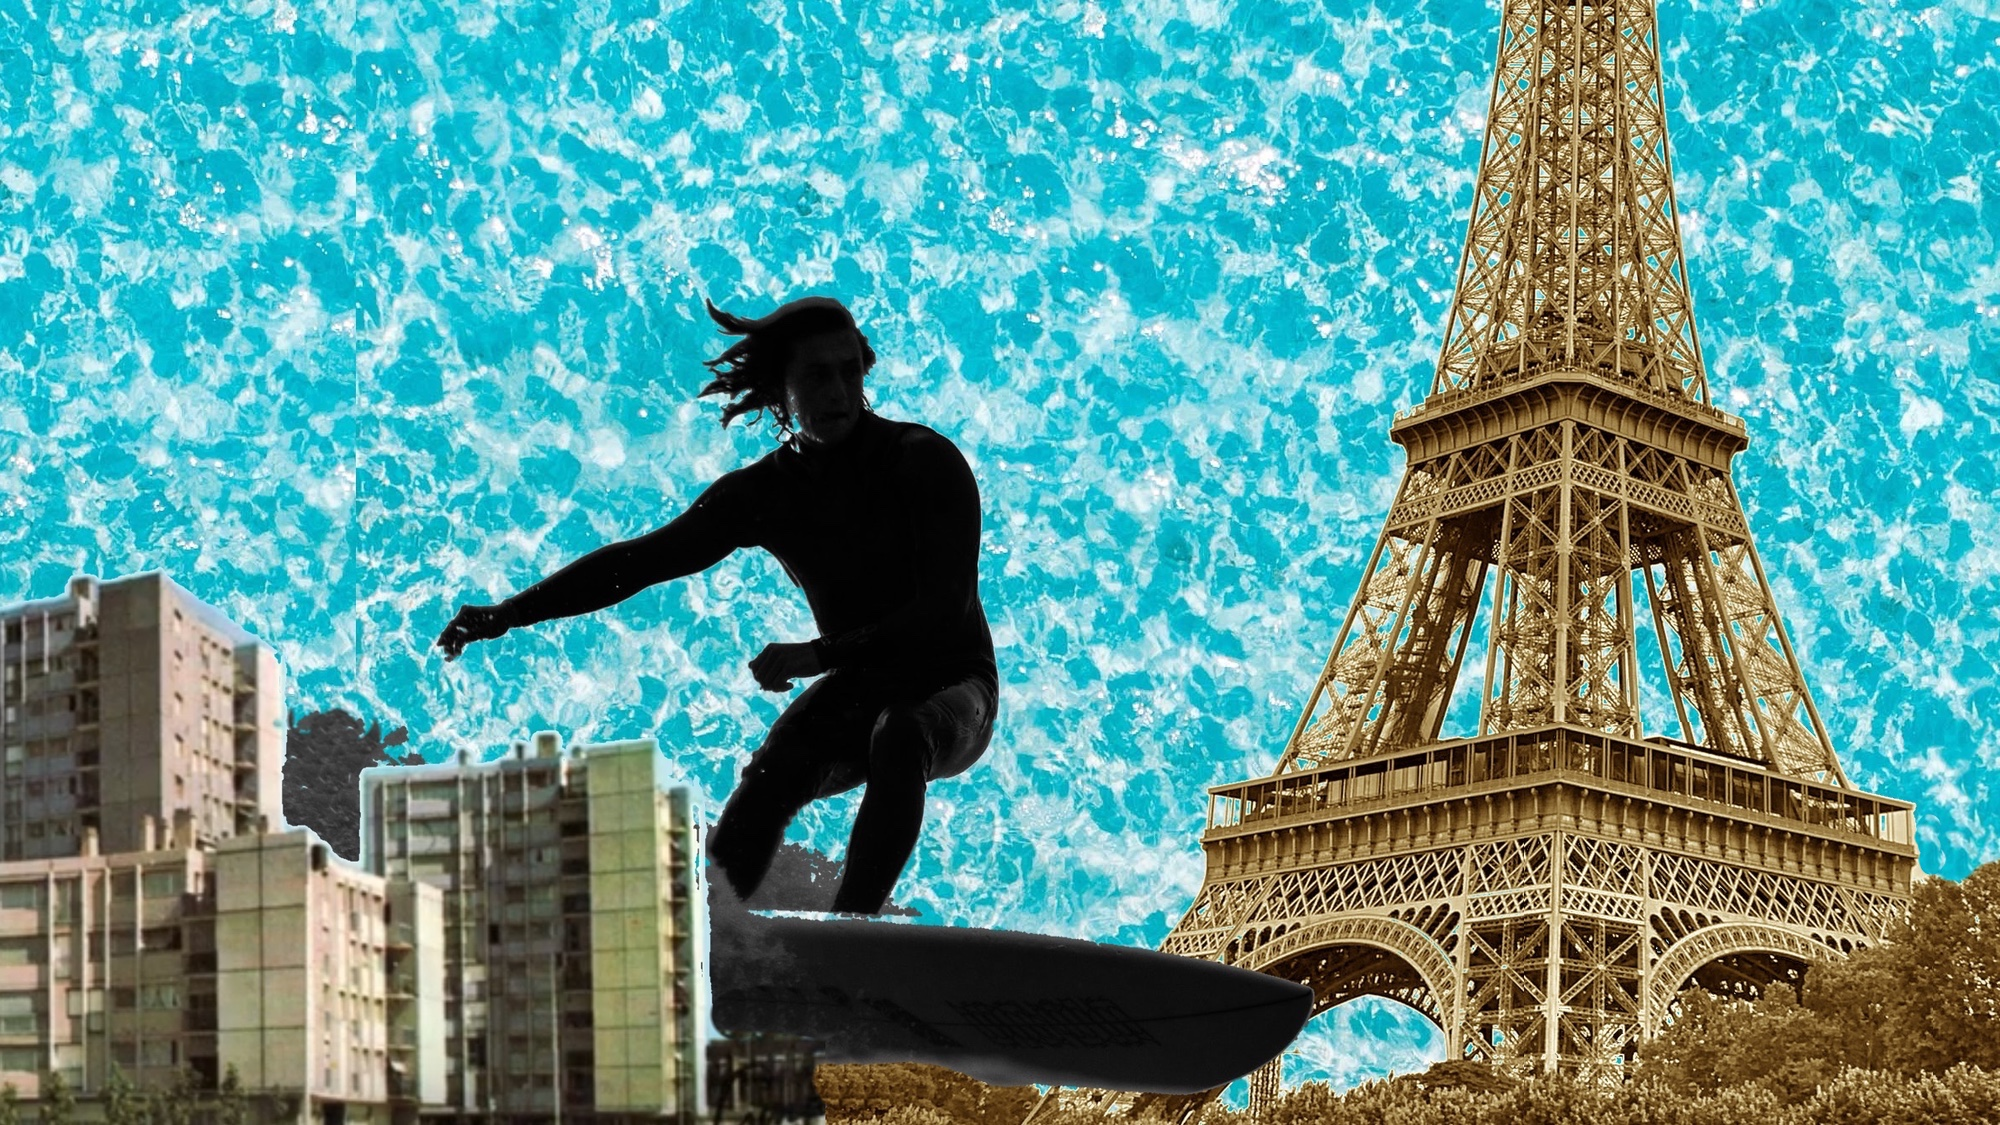 Artist mock up of surfer and eiffel tower